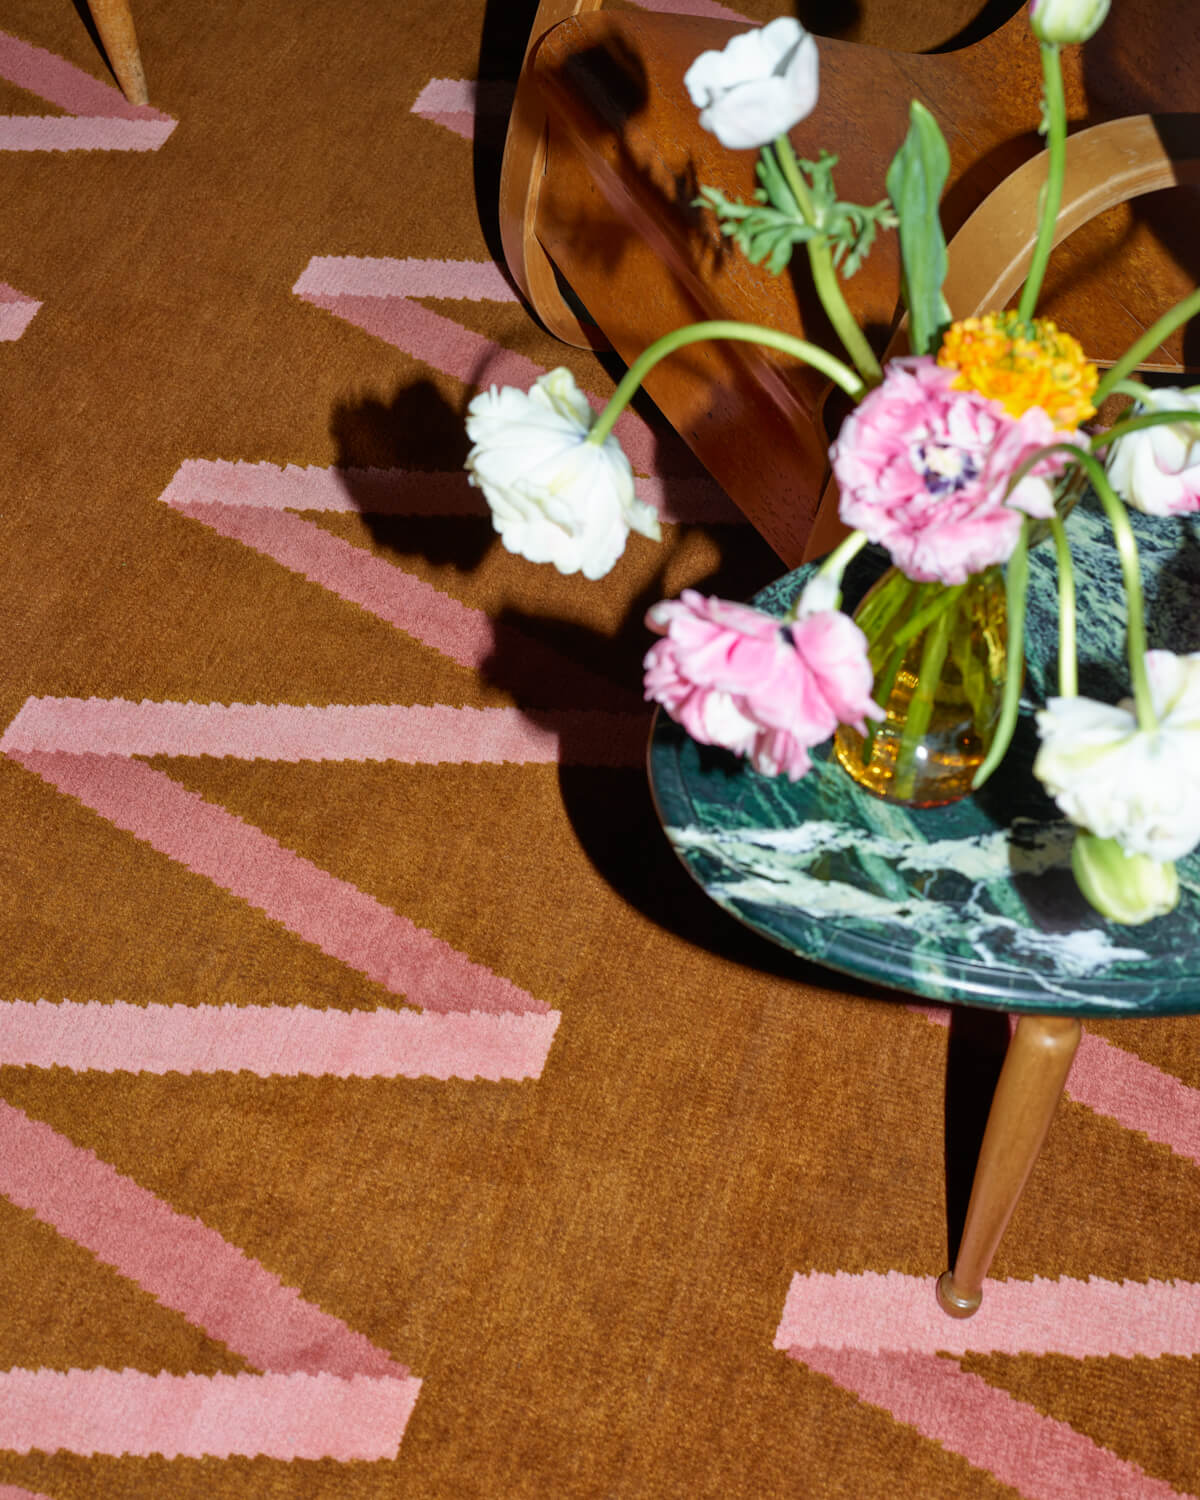 Folding Ribbon rug up close with flowers in a beautiful palace